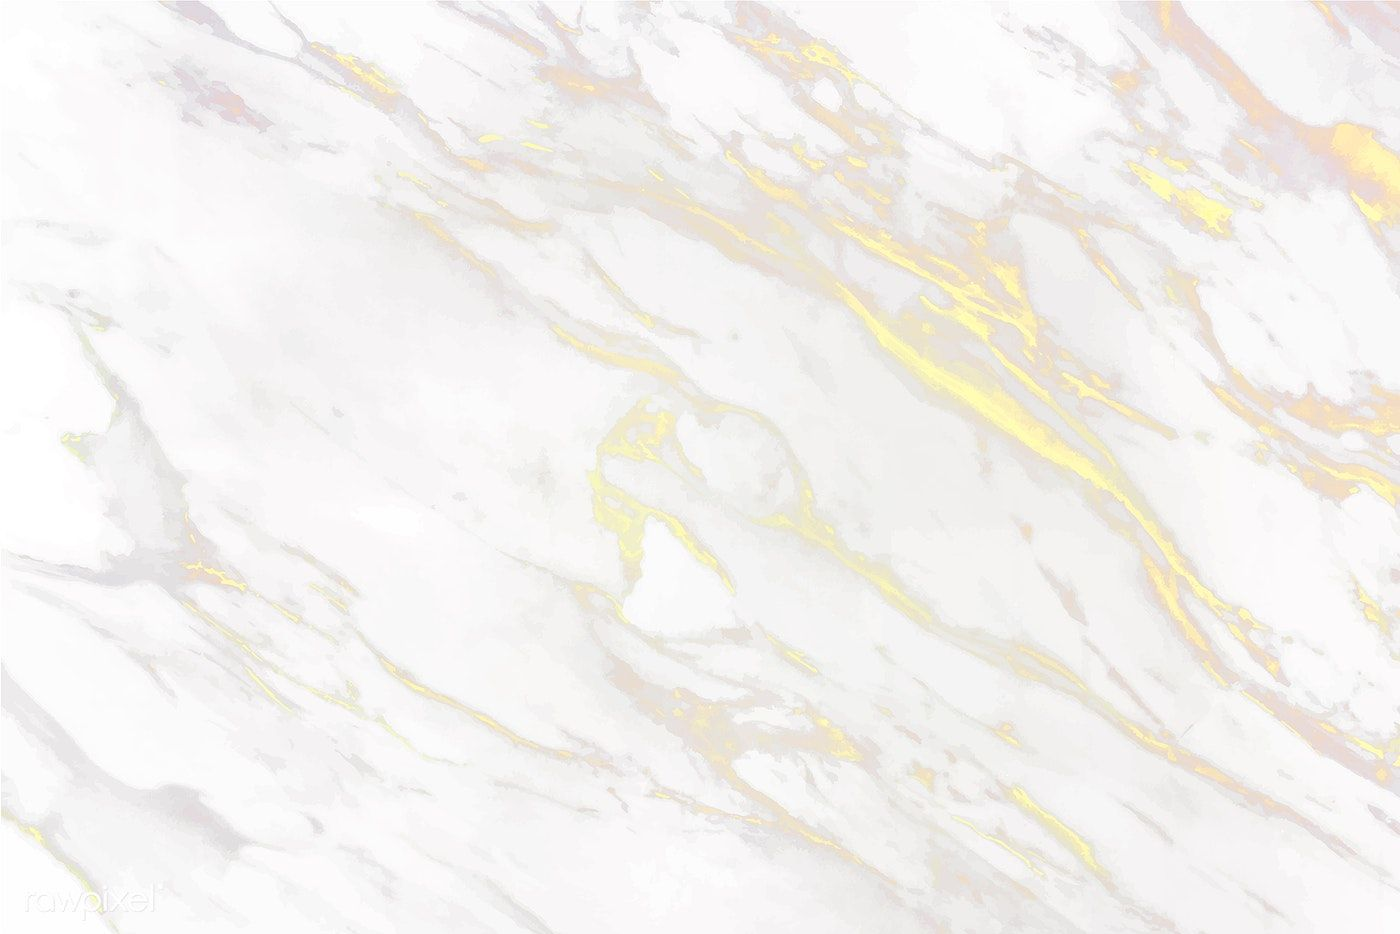 Close up of white marble texture background | free image by rawpixel.com #marble #white #background #texture #design #marbletexture